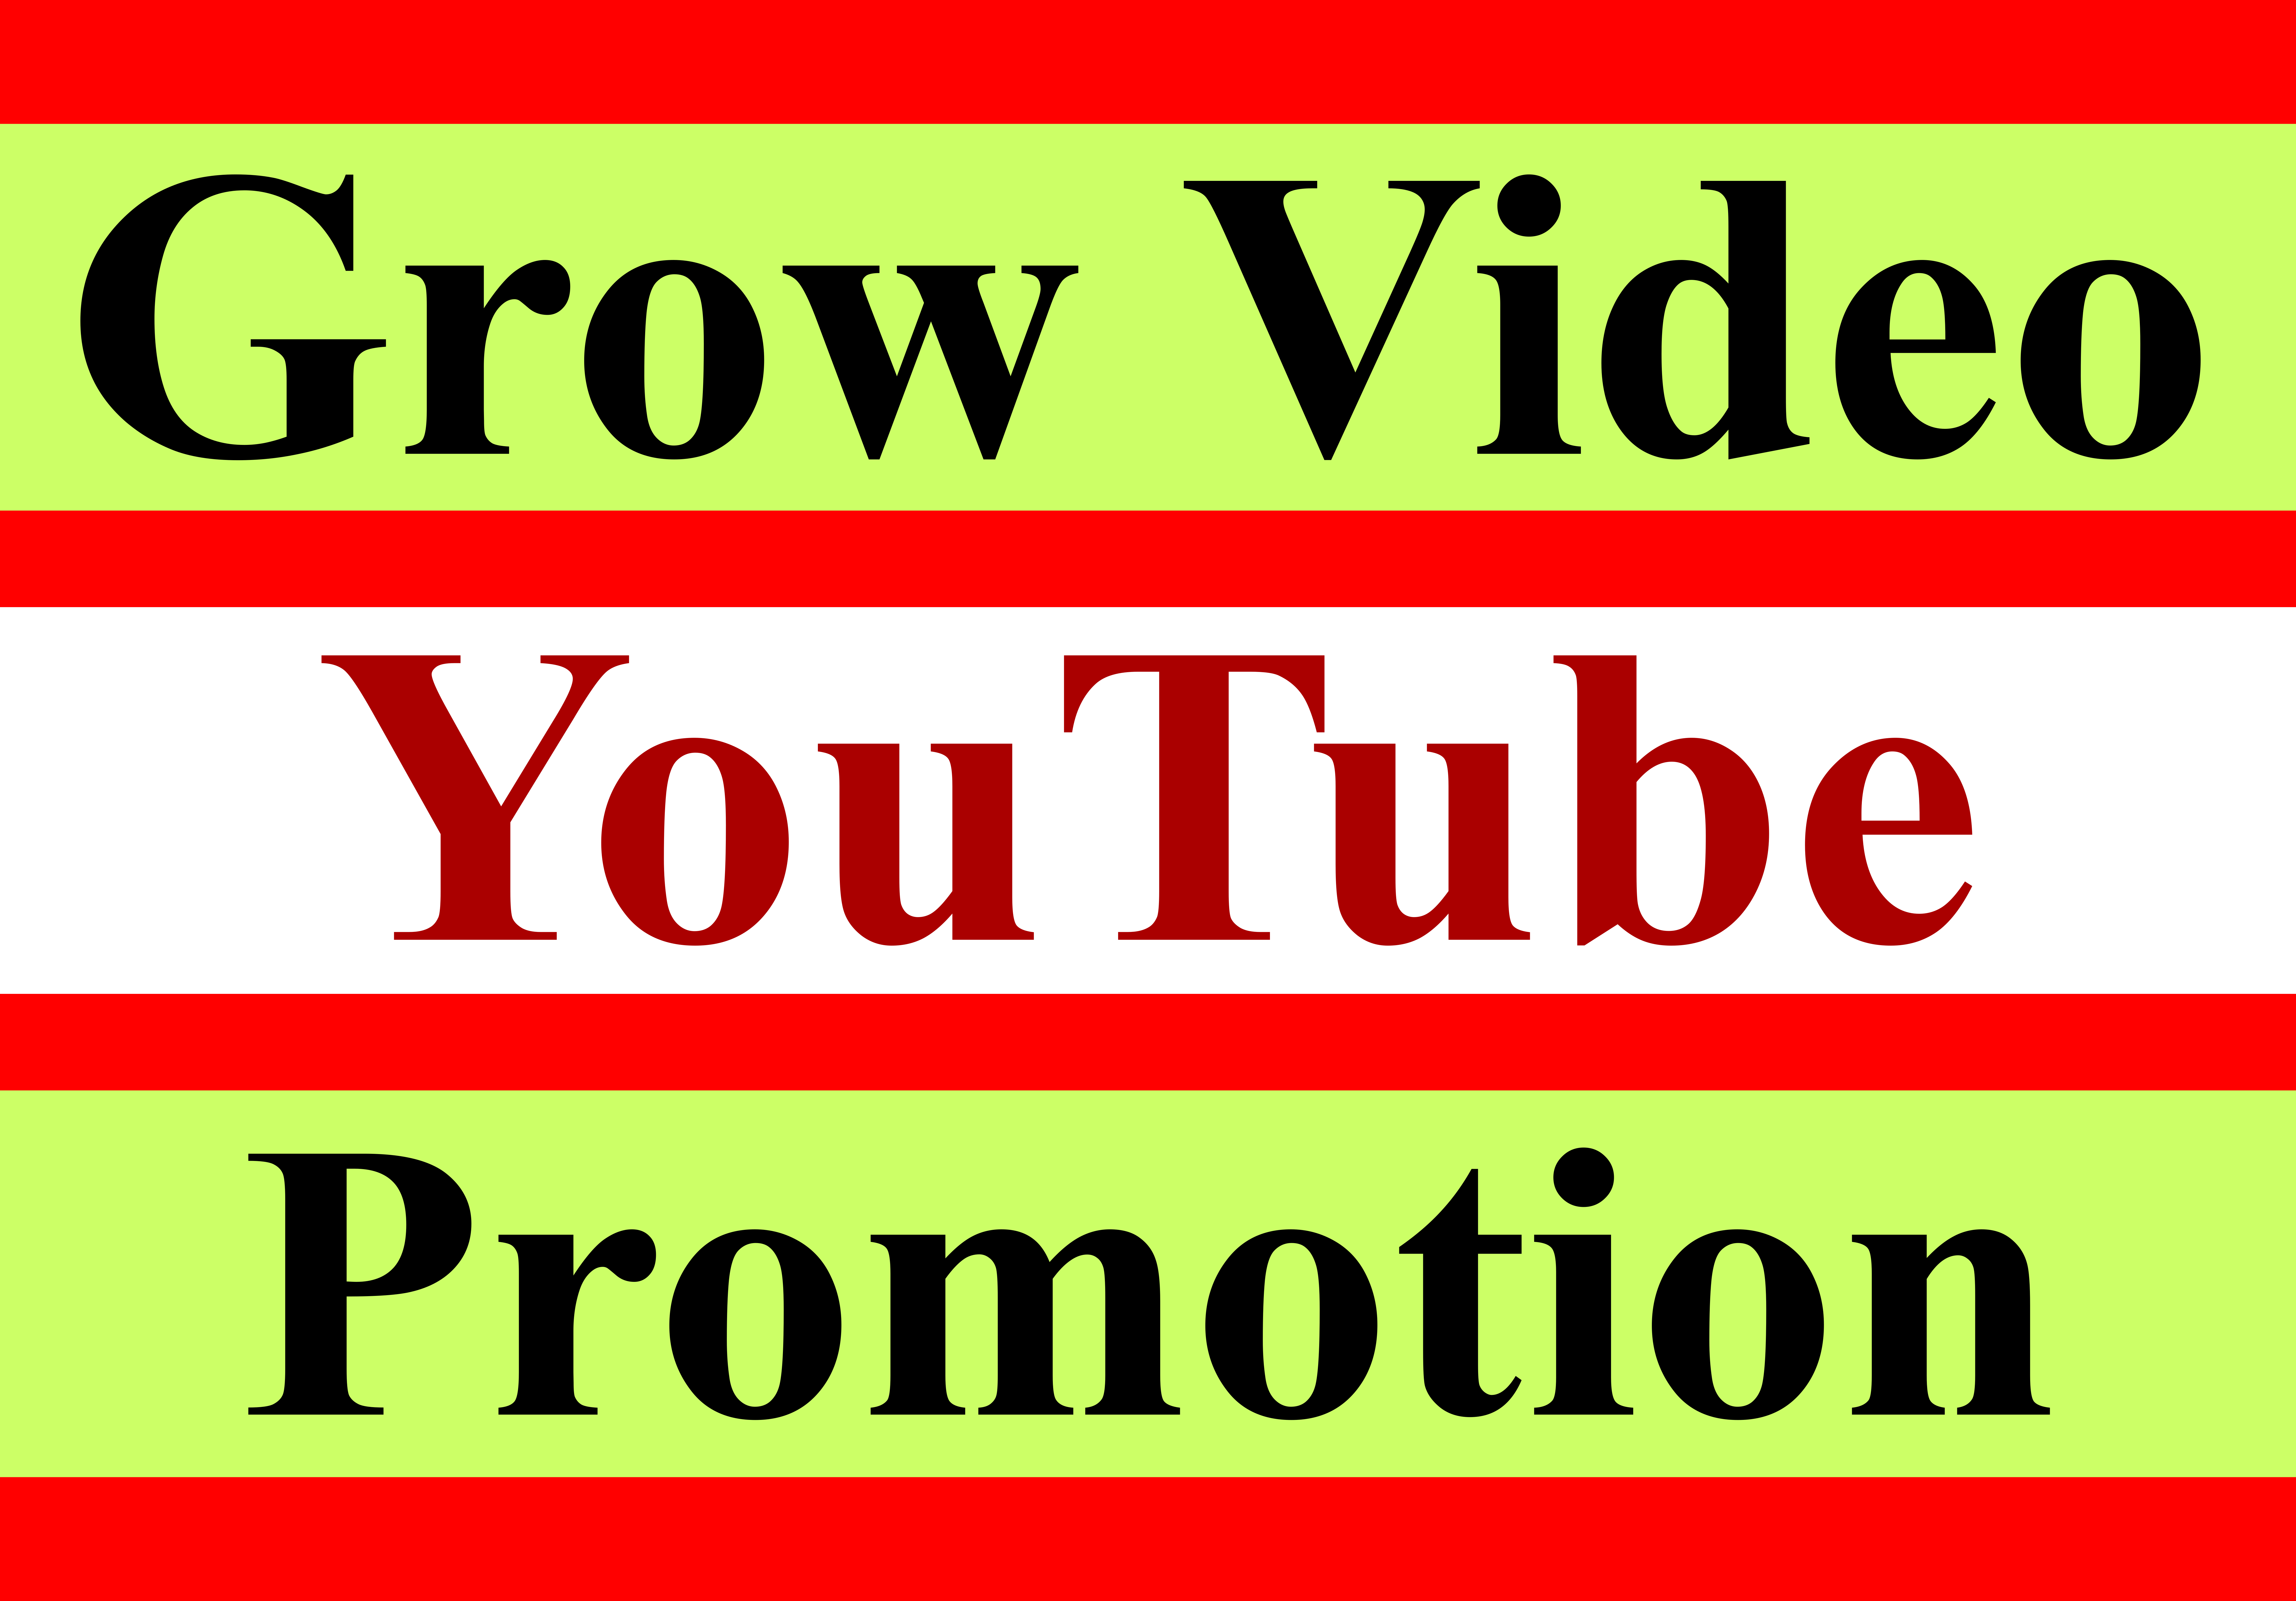 Youtube video permanent promotion and marketing